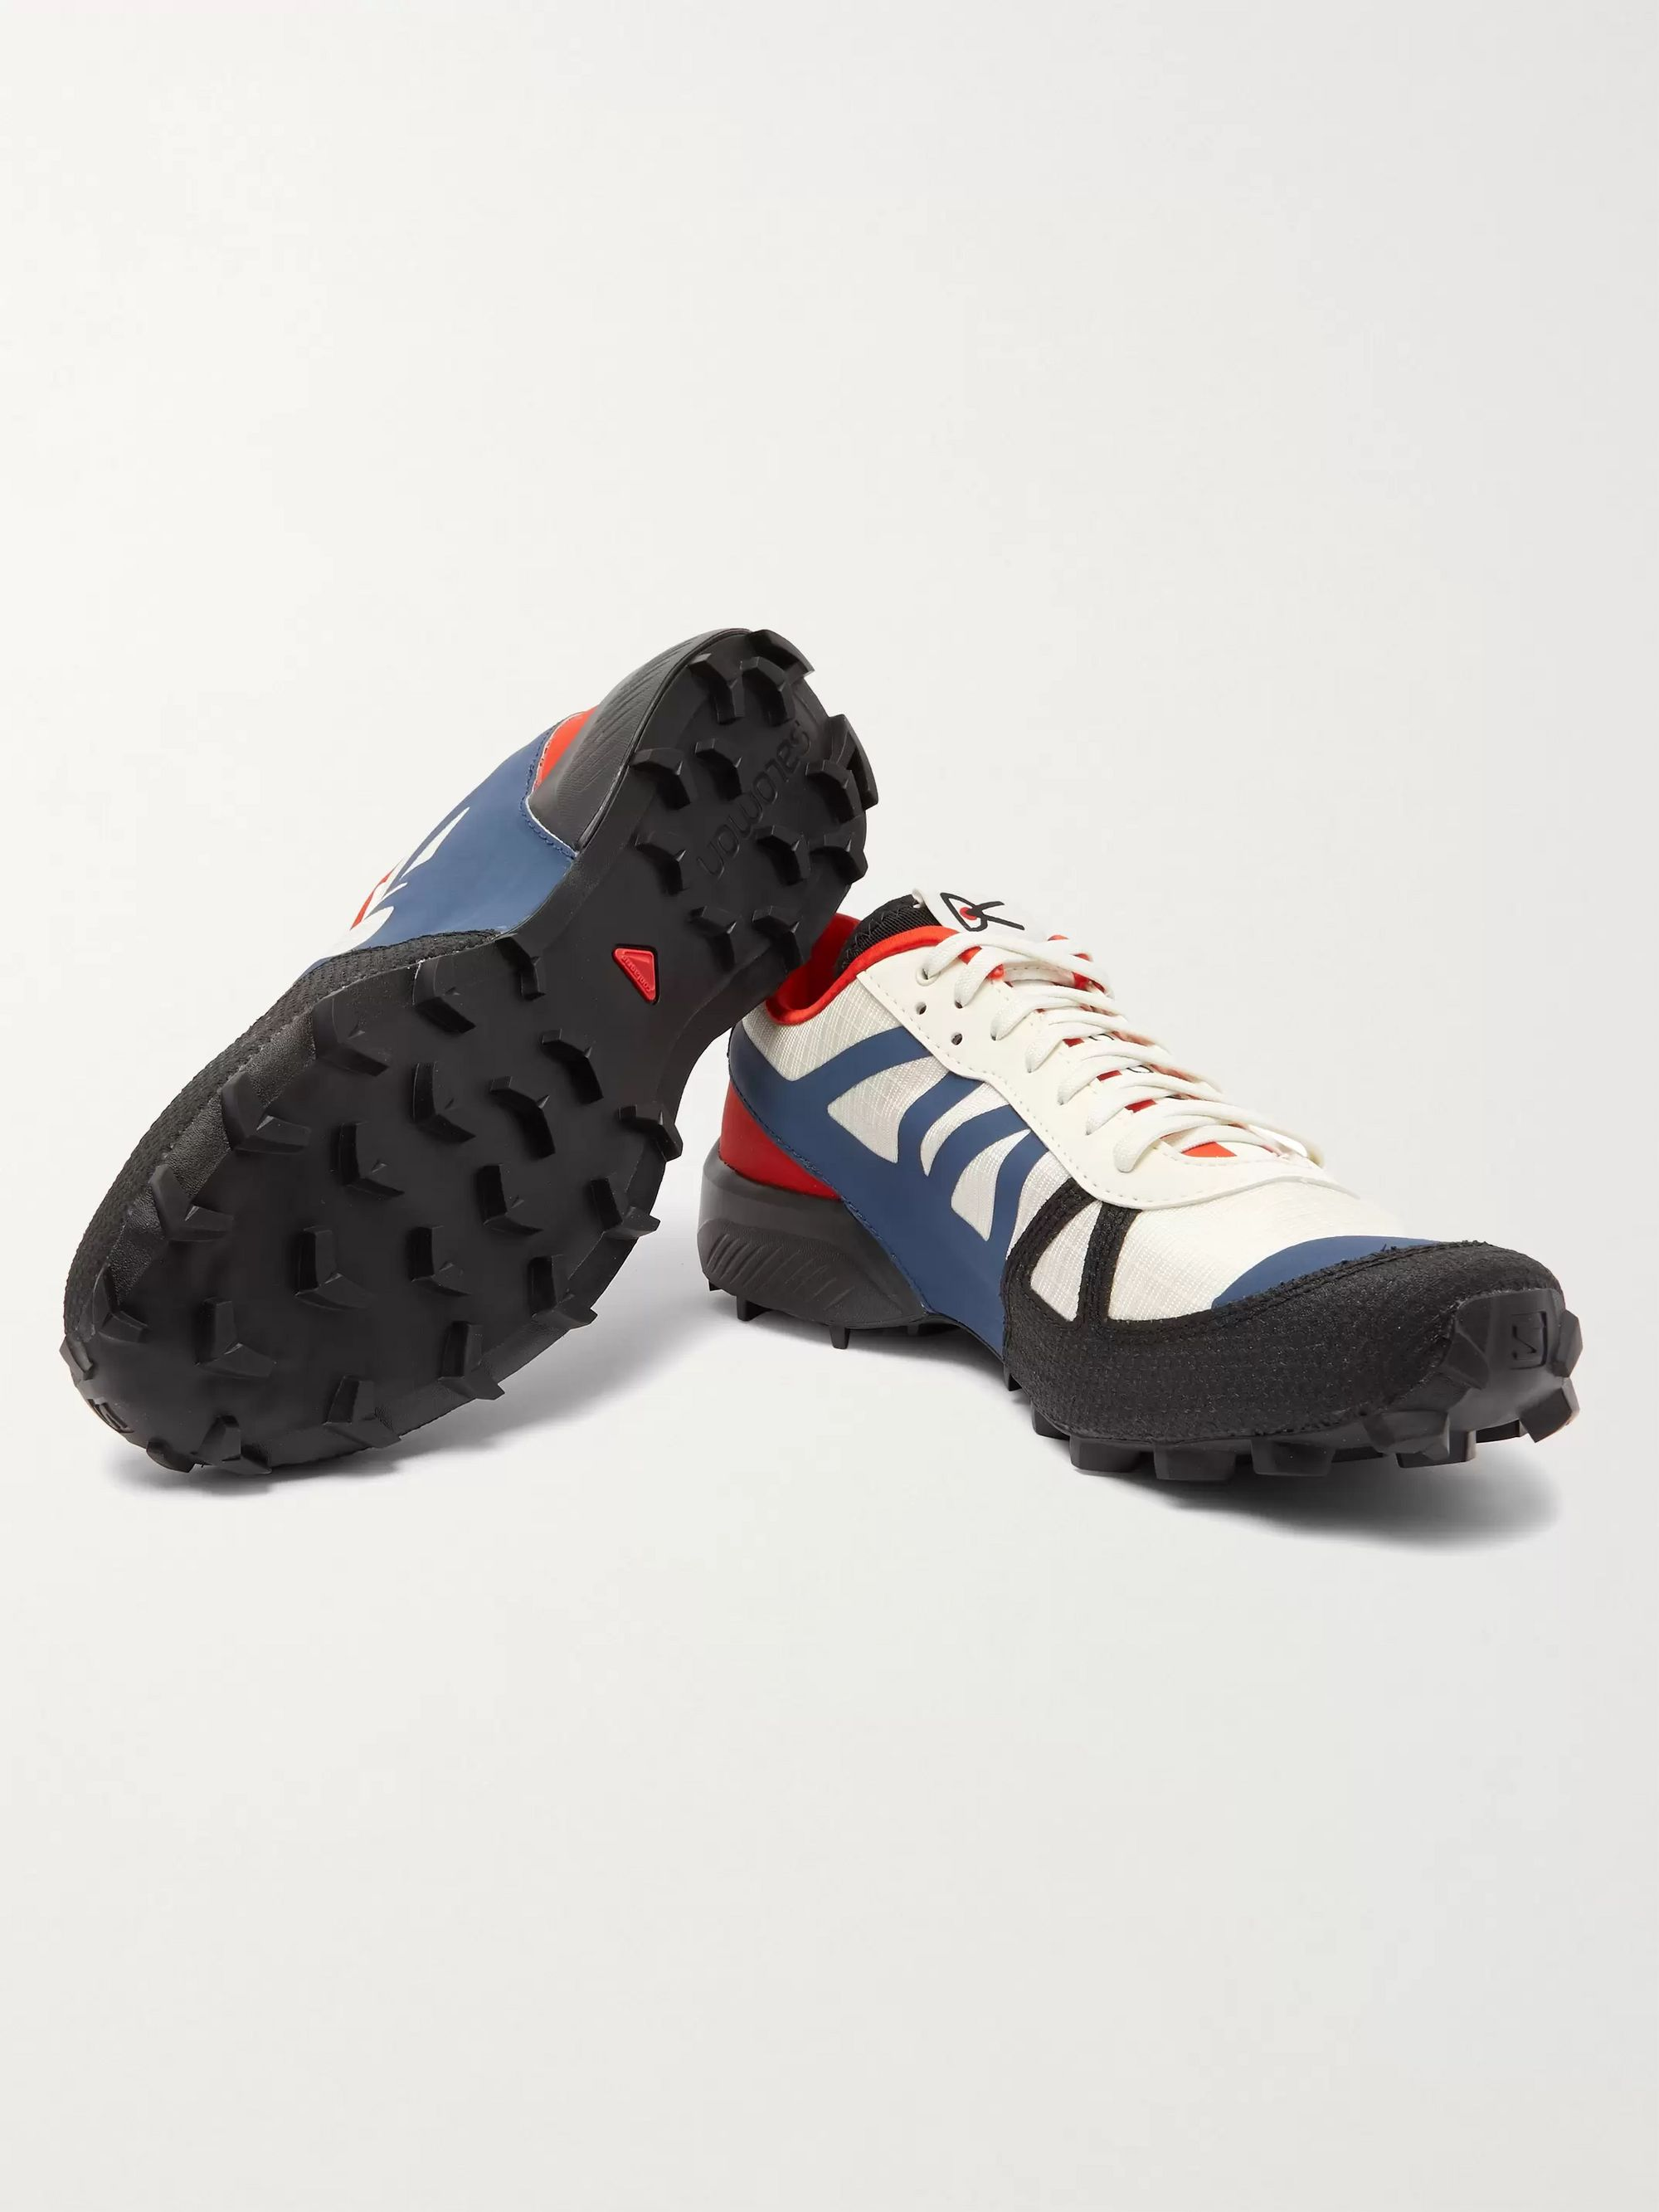 DISTRICT VISION + Salomon Rubber and Kevlar-Trimmed Mesh Sneakers